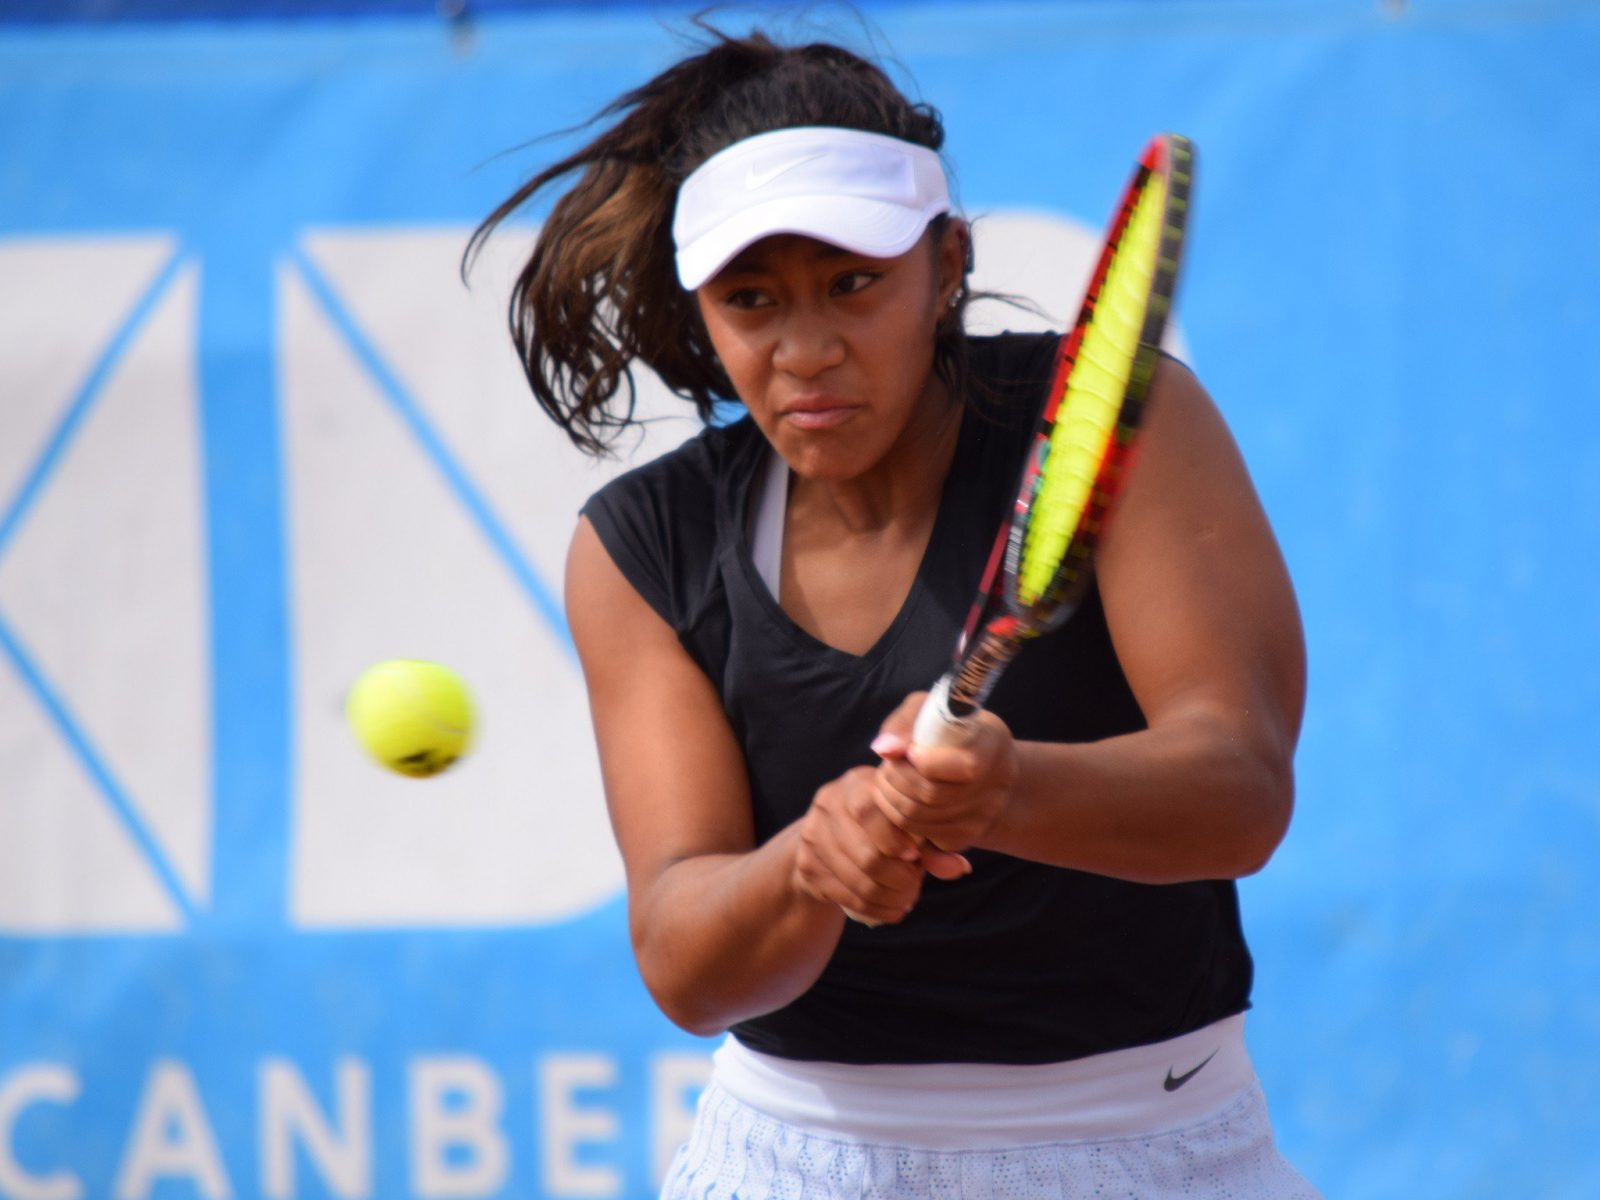 Destanee Aiava in action at the 2018 ACT Claycourt International